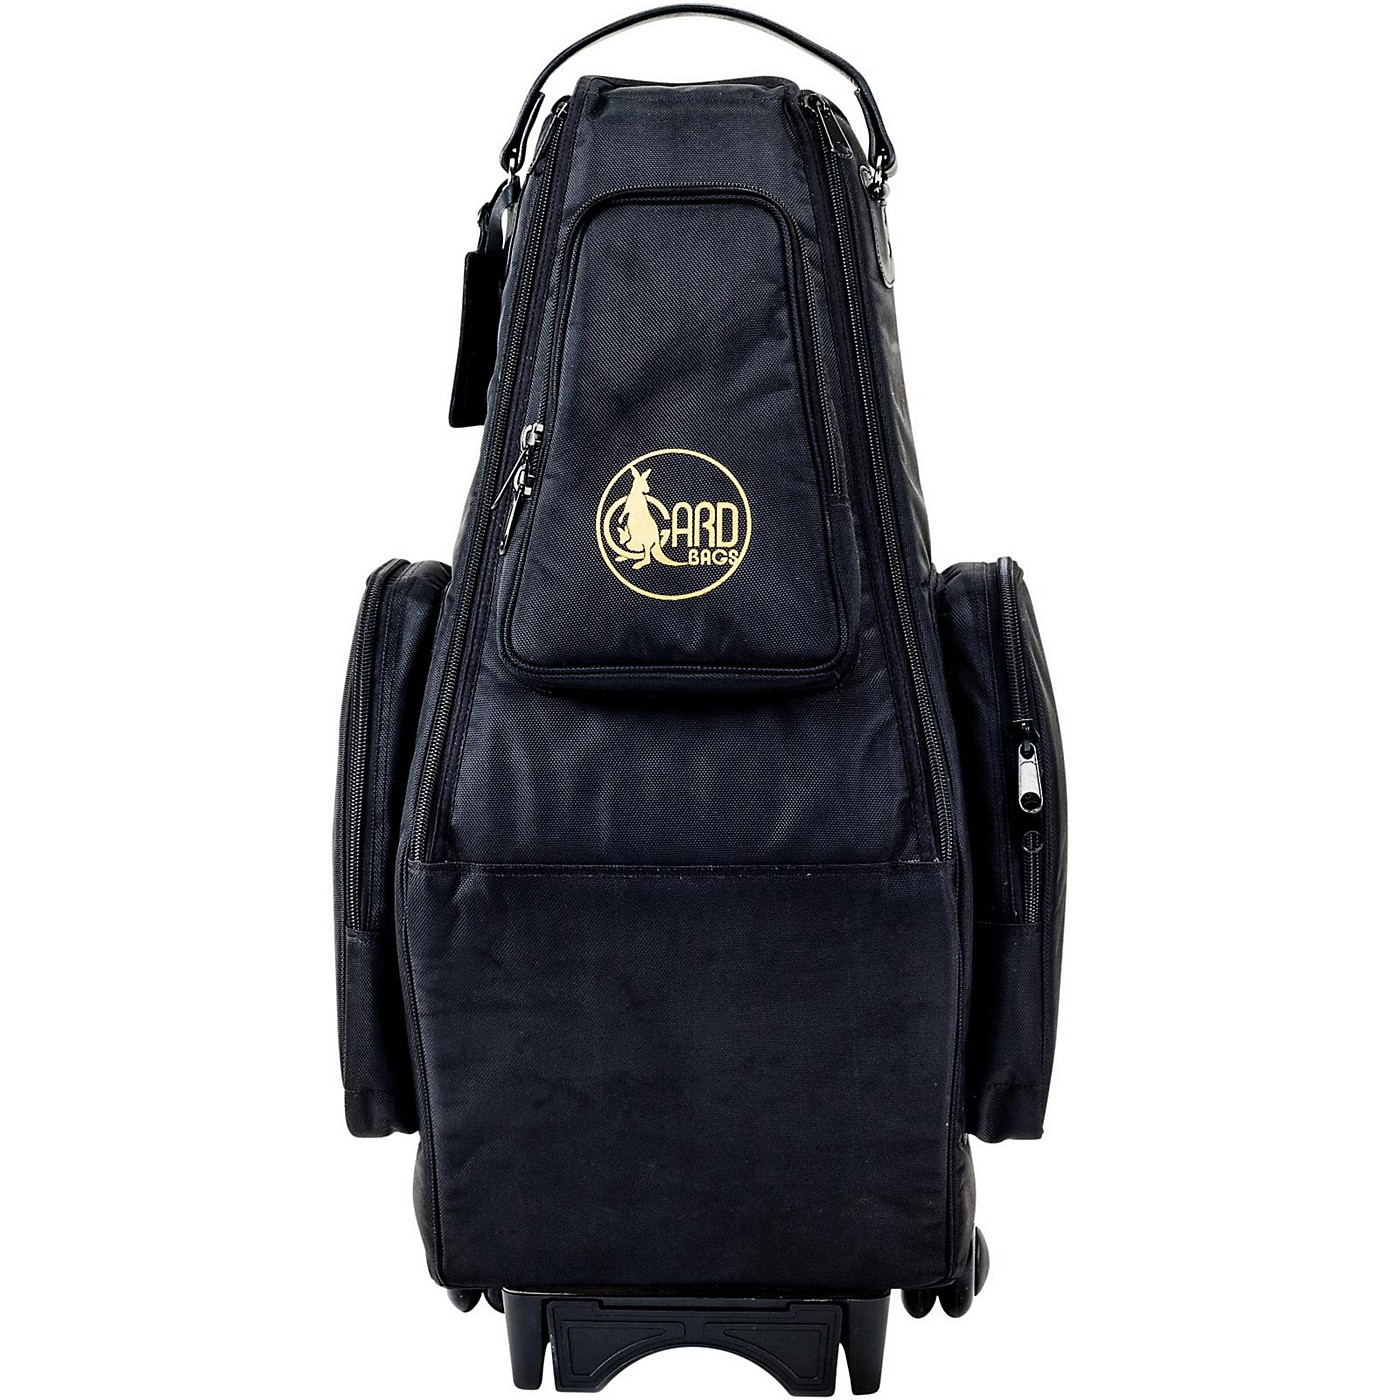 Gard Saxophone Wheelie Bag in Synthetic with Leather Trim thumbnail